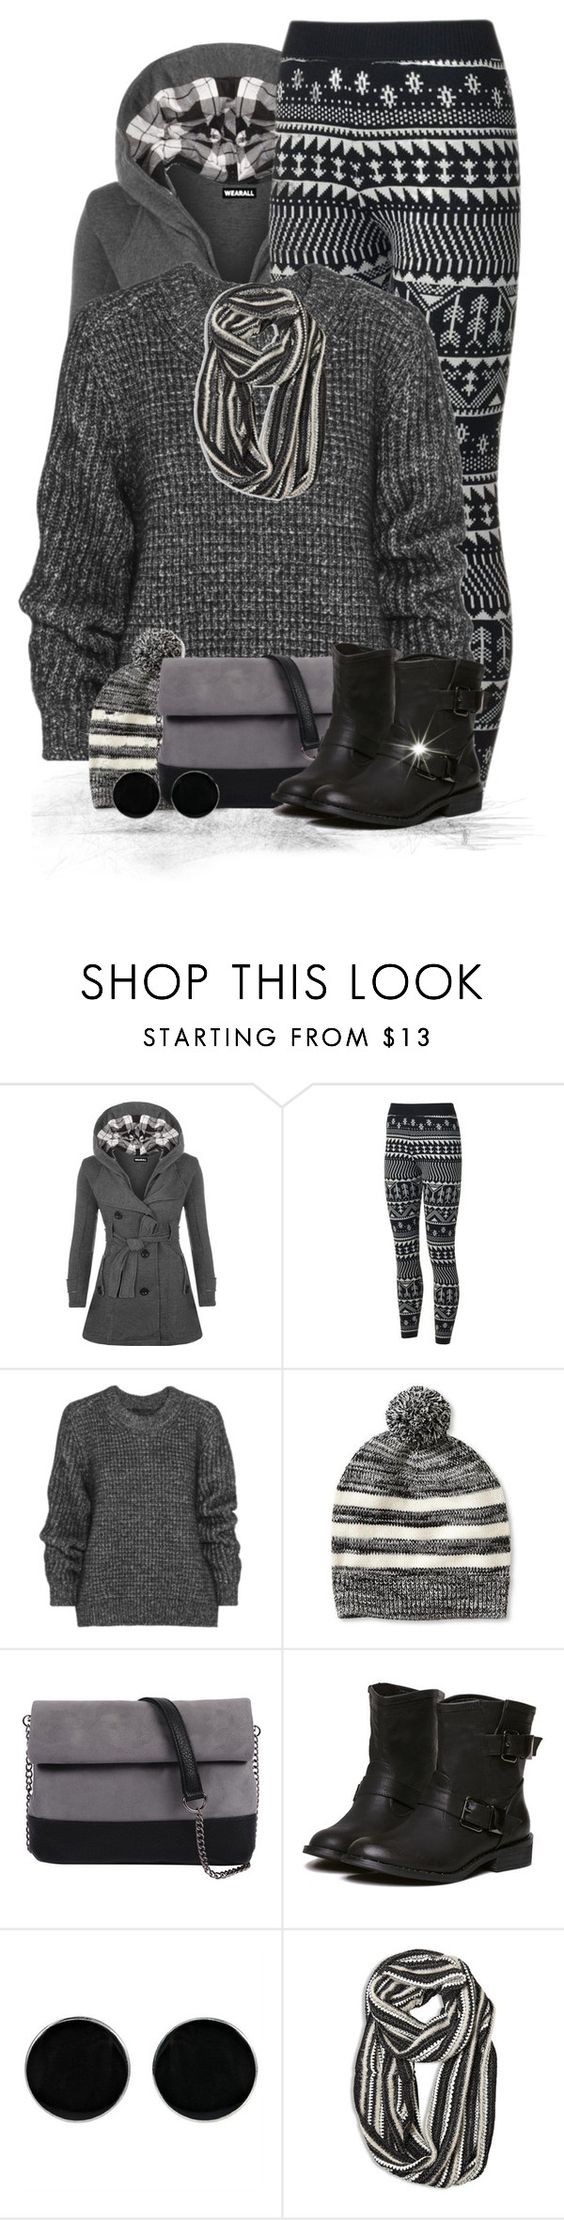 """""""Oversized Sweater & Leggings 2"""" by majezy ❤ liked on Polyvore featuring WearAll, Belstaff, Banana Republic, 7 Chi, AeraVida, Avenue, women's clothing, women's fashion, women and female"""